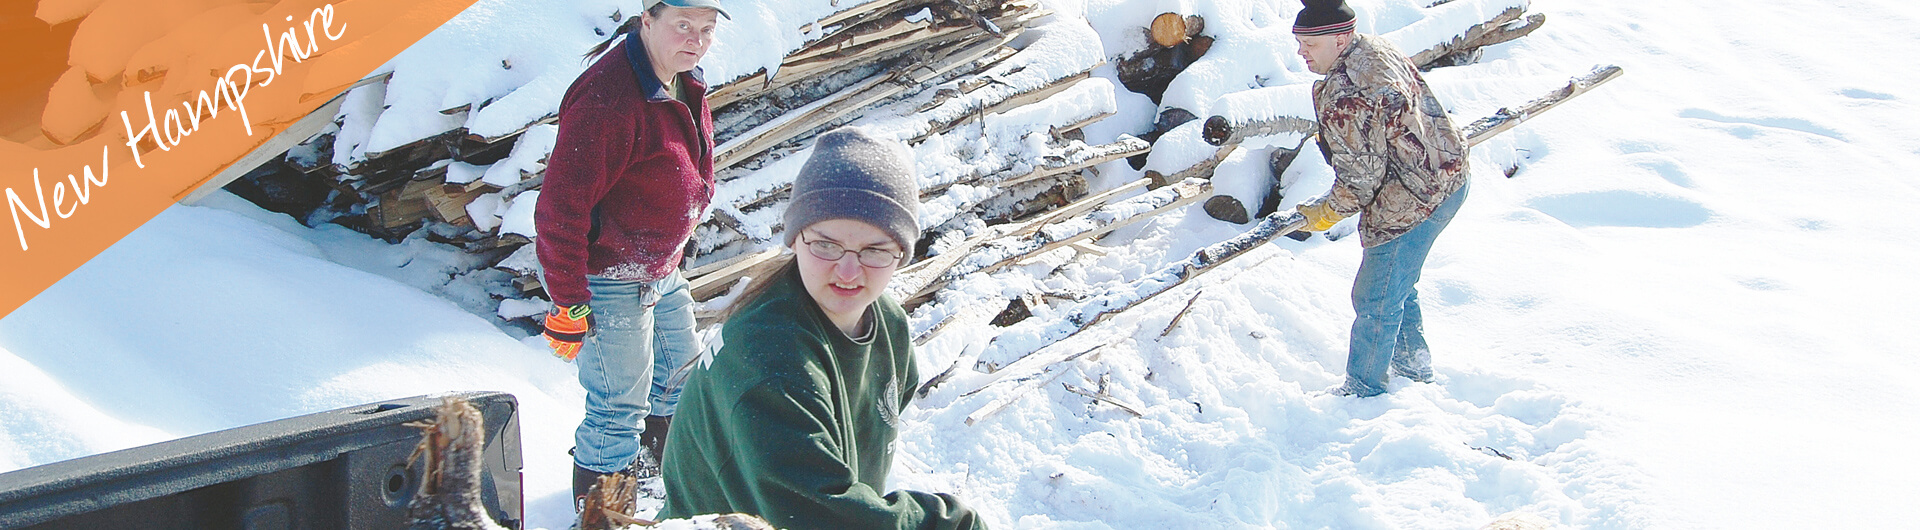 New Hampshire Car Donation Banner | Family Moving Timber in the Snow